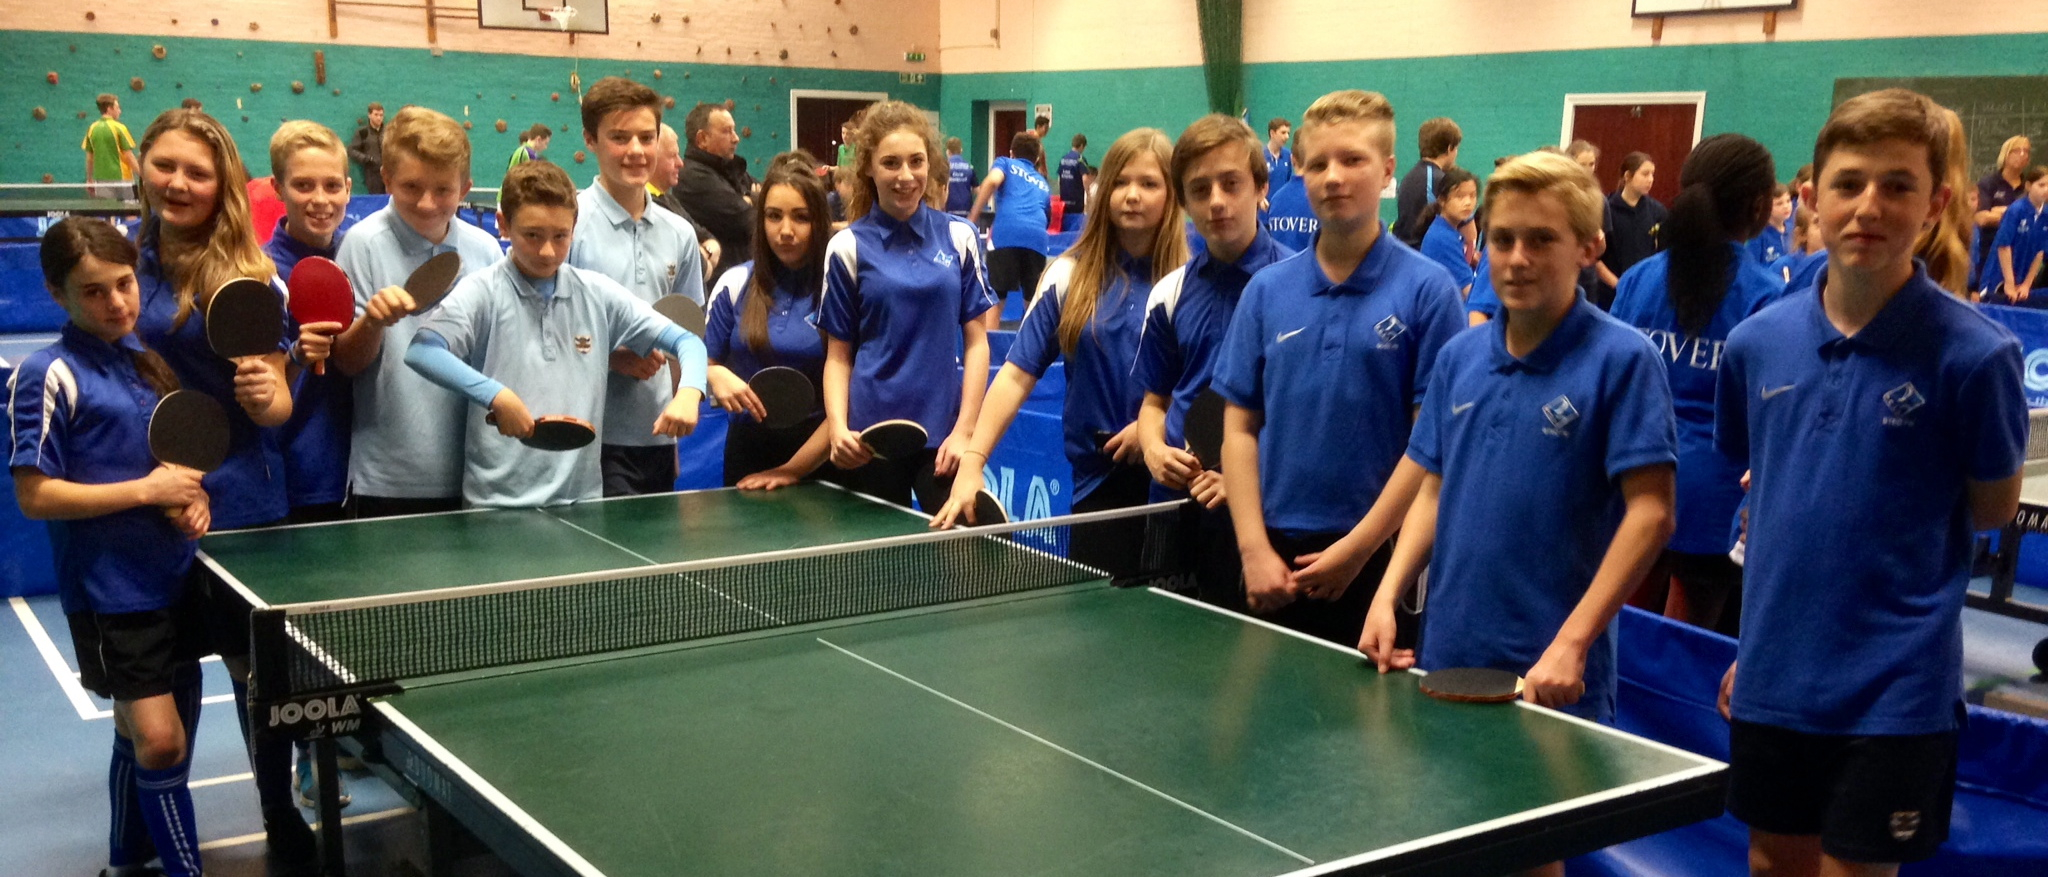 Terrific Tournament for Table Tennis Teams